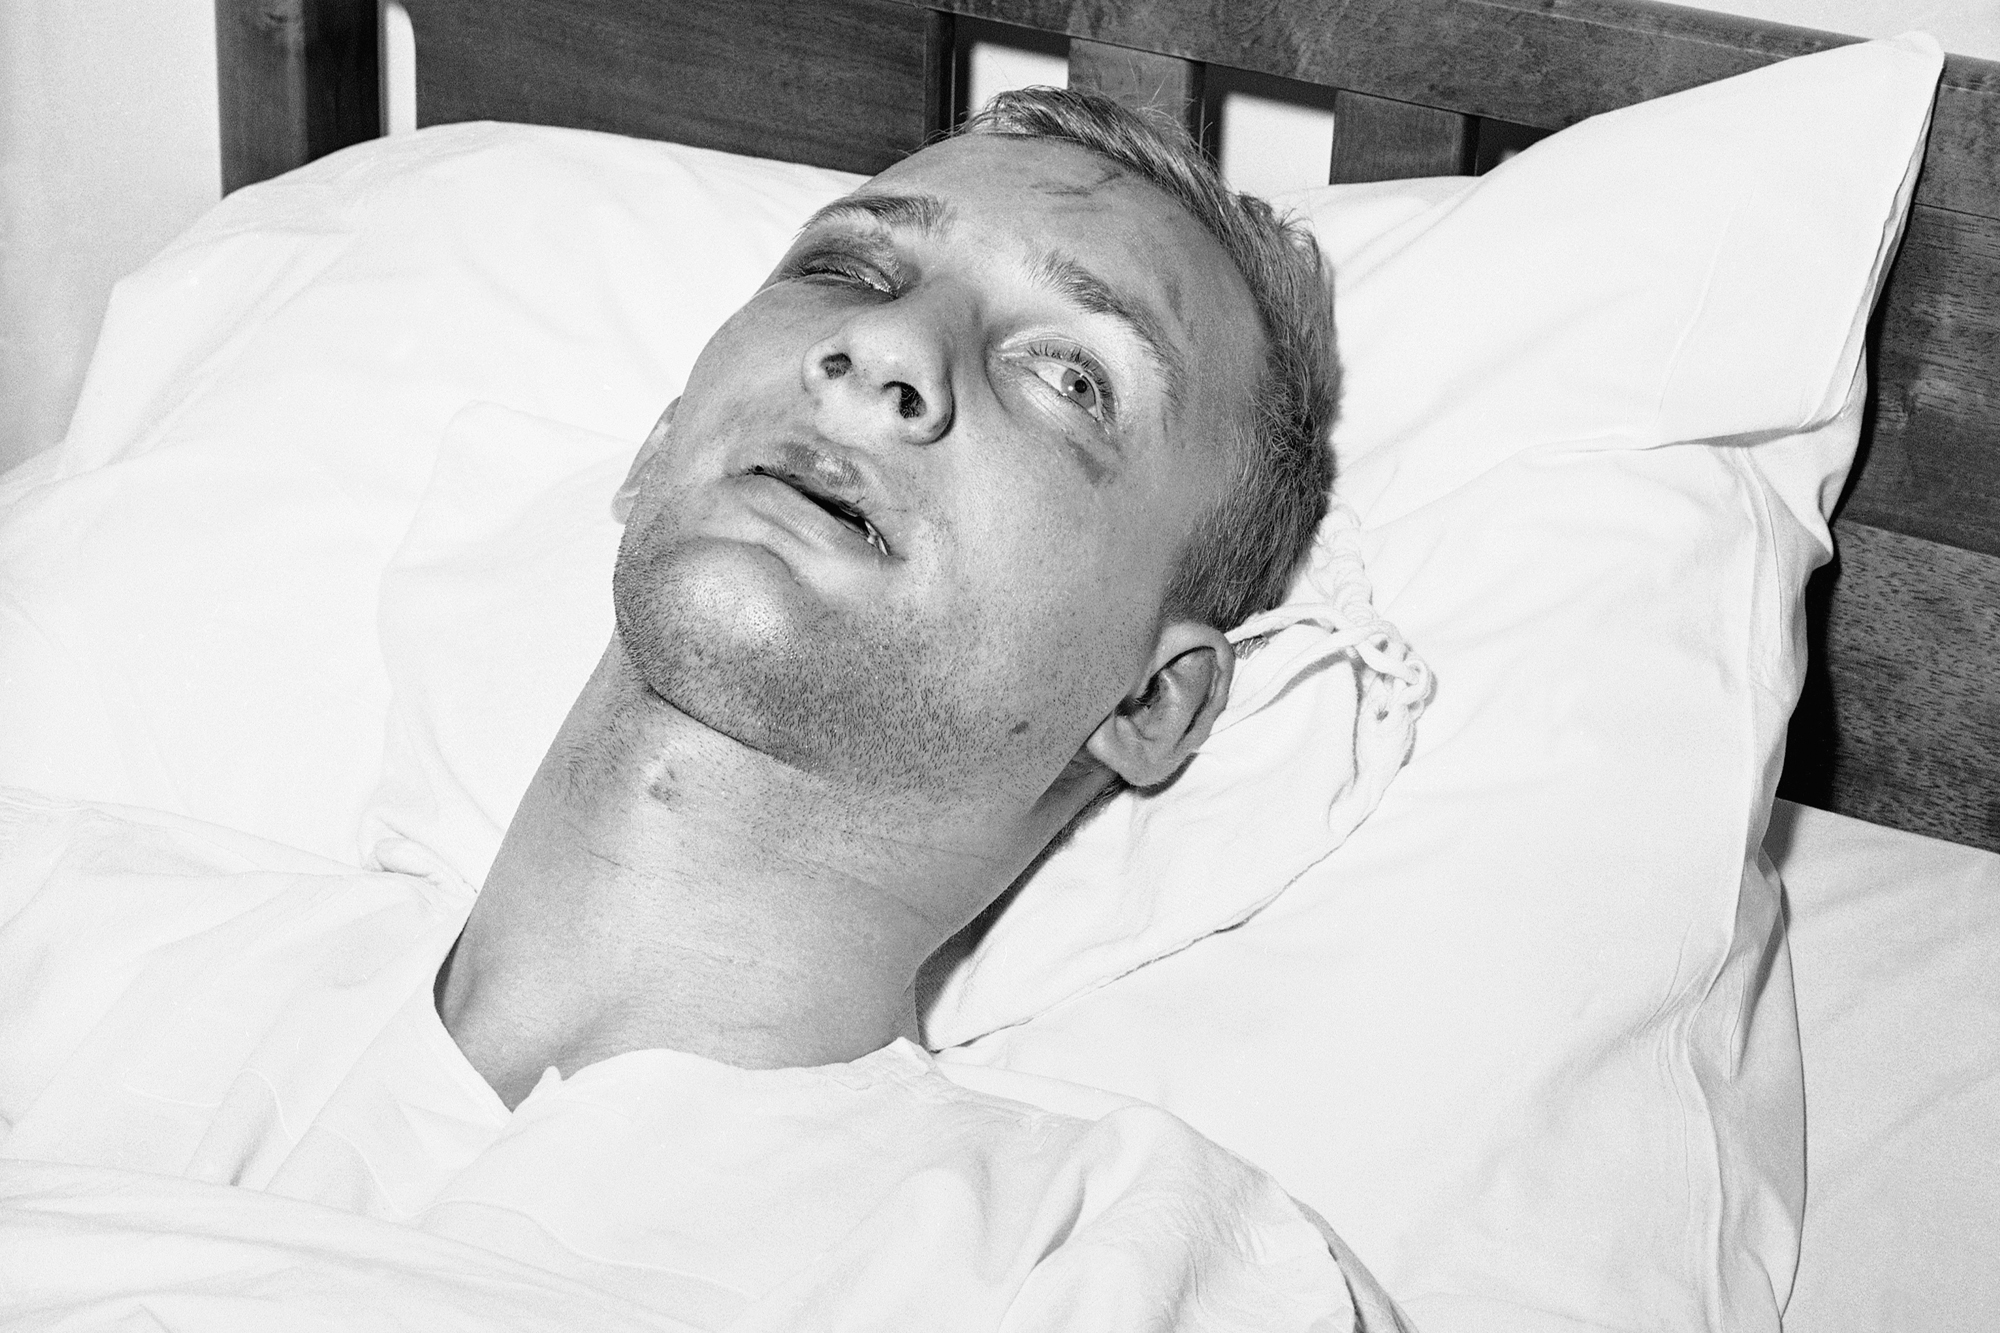 "Jim Zwerg, a ""freedom rider"" recuperates in hospital on May 21, 1961 in Montgomery, Ala. after he was beaten by a mob at the bus station yesterday. Zwerg, 21 years old ministerial student, suffered cuts and bruises and lost several teeth in the attack."